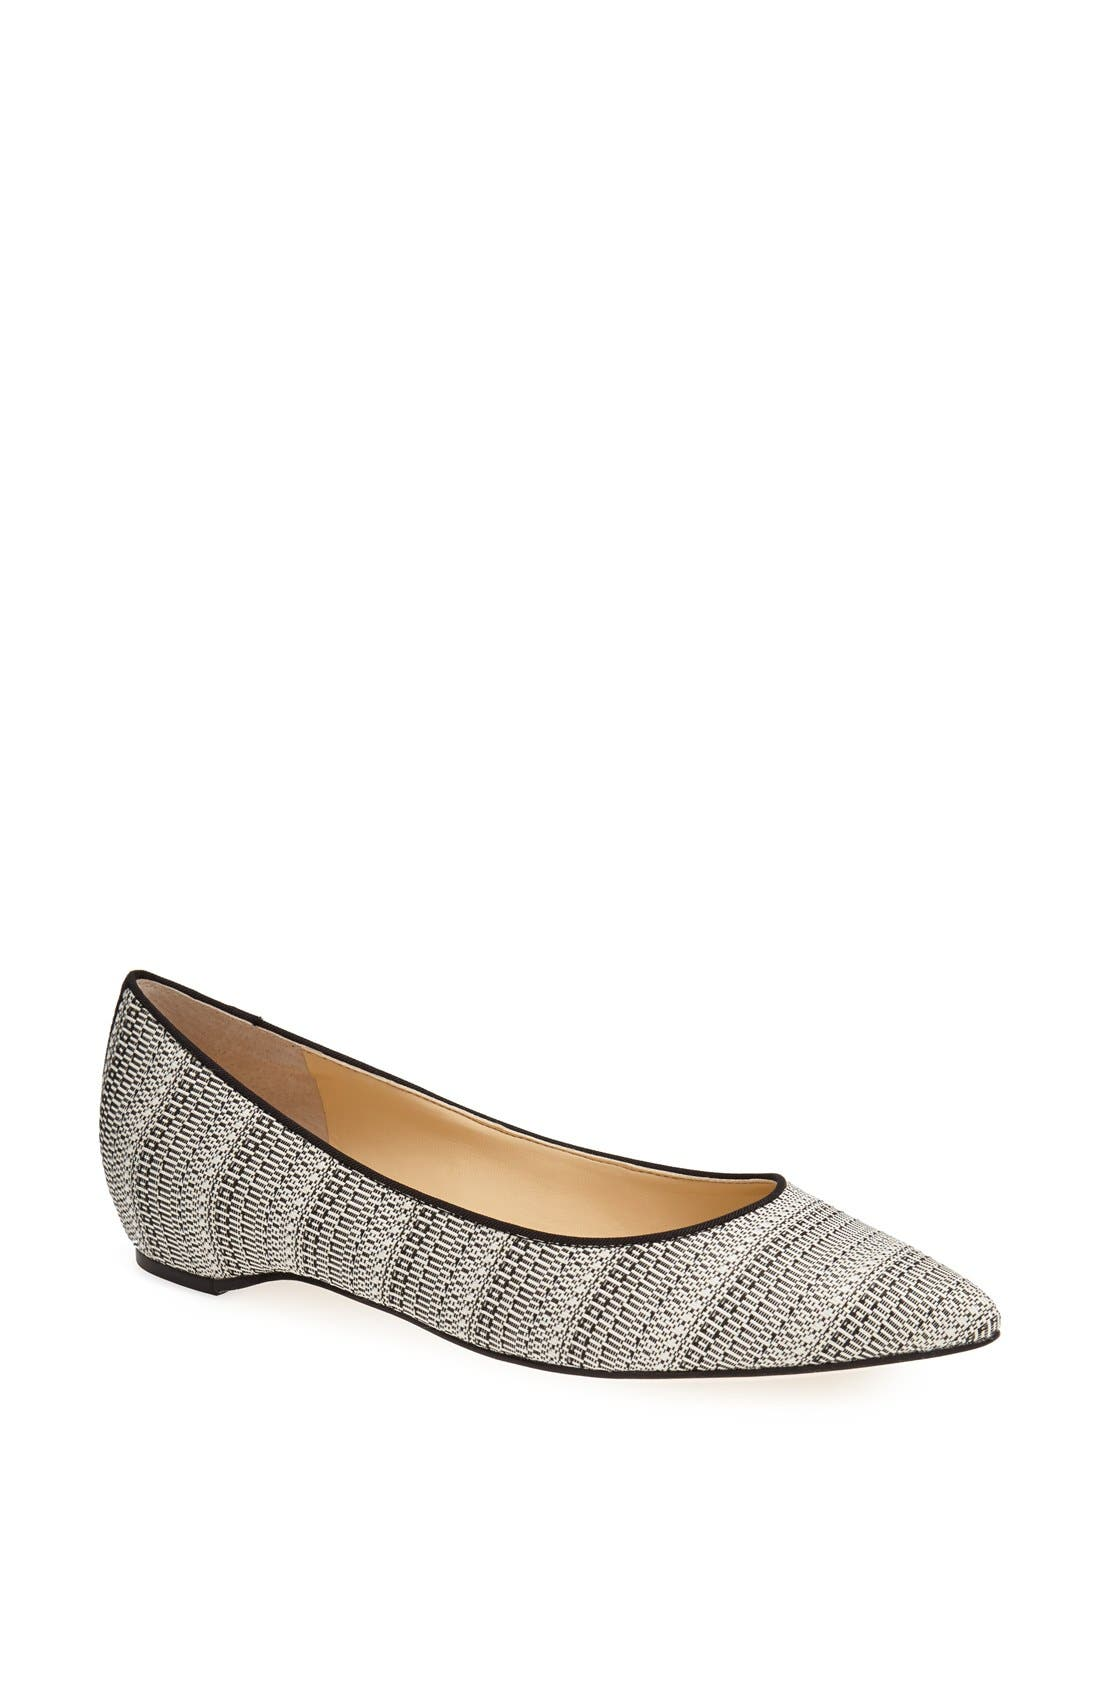 Alternate Image 1 Selected - Ivanka Trump 'Chic' Flat (Women)